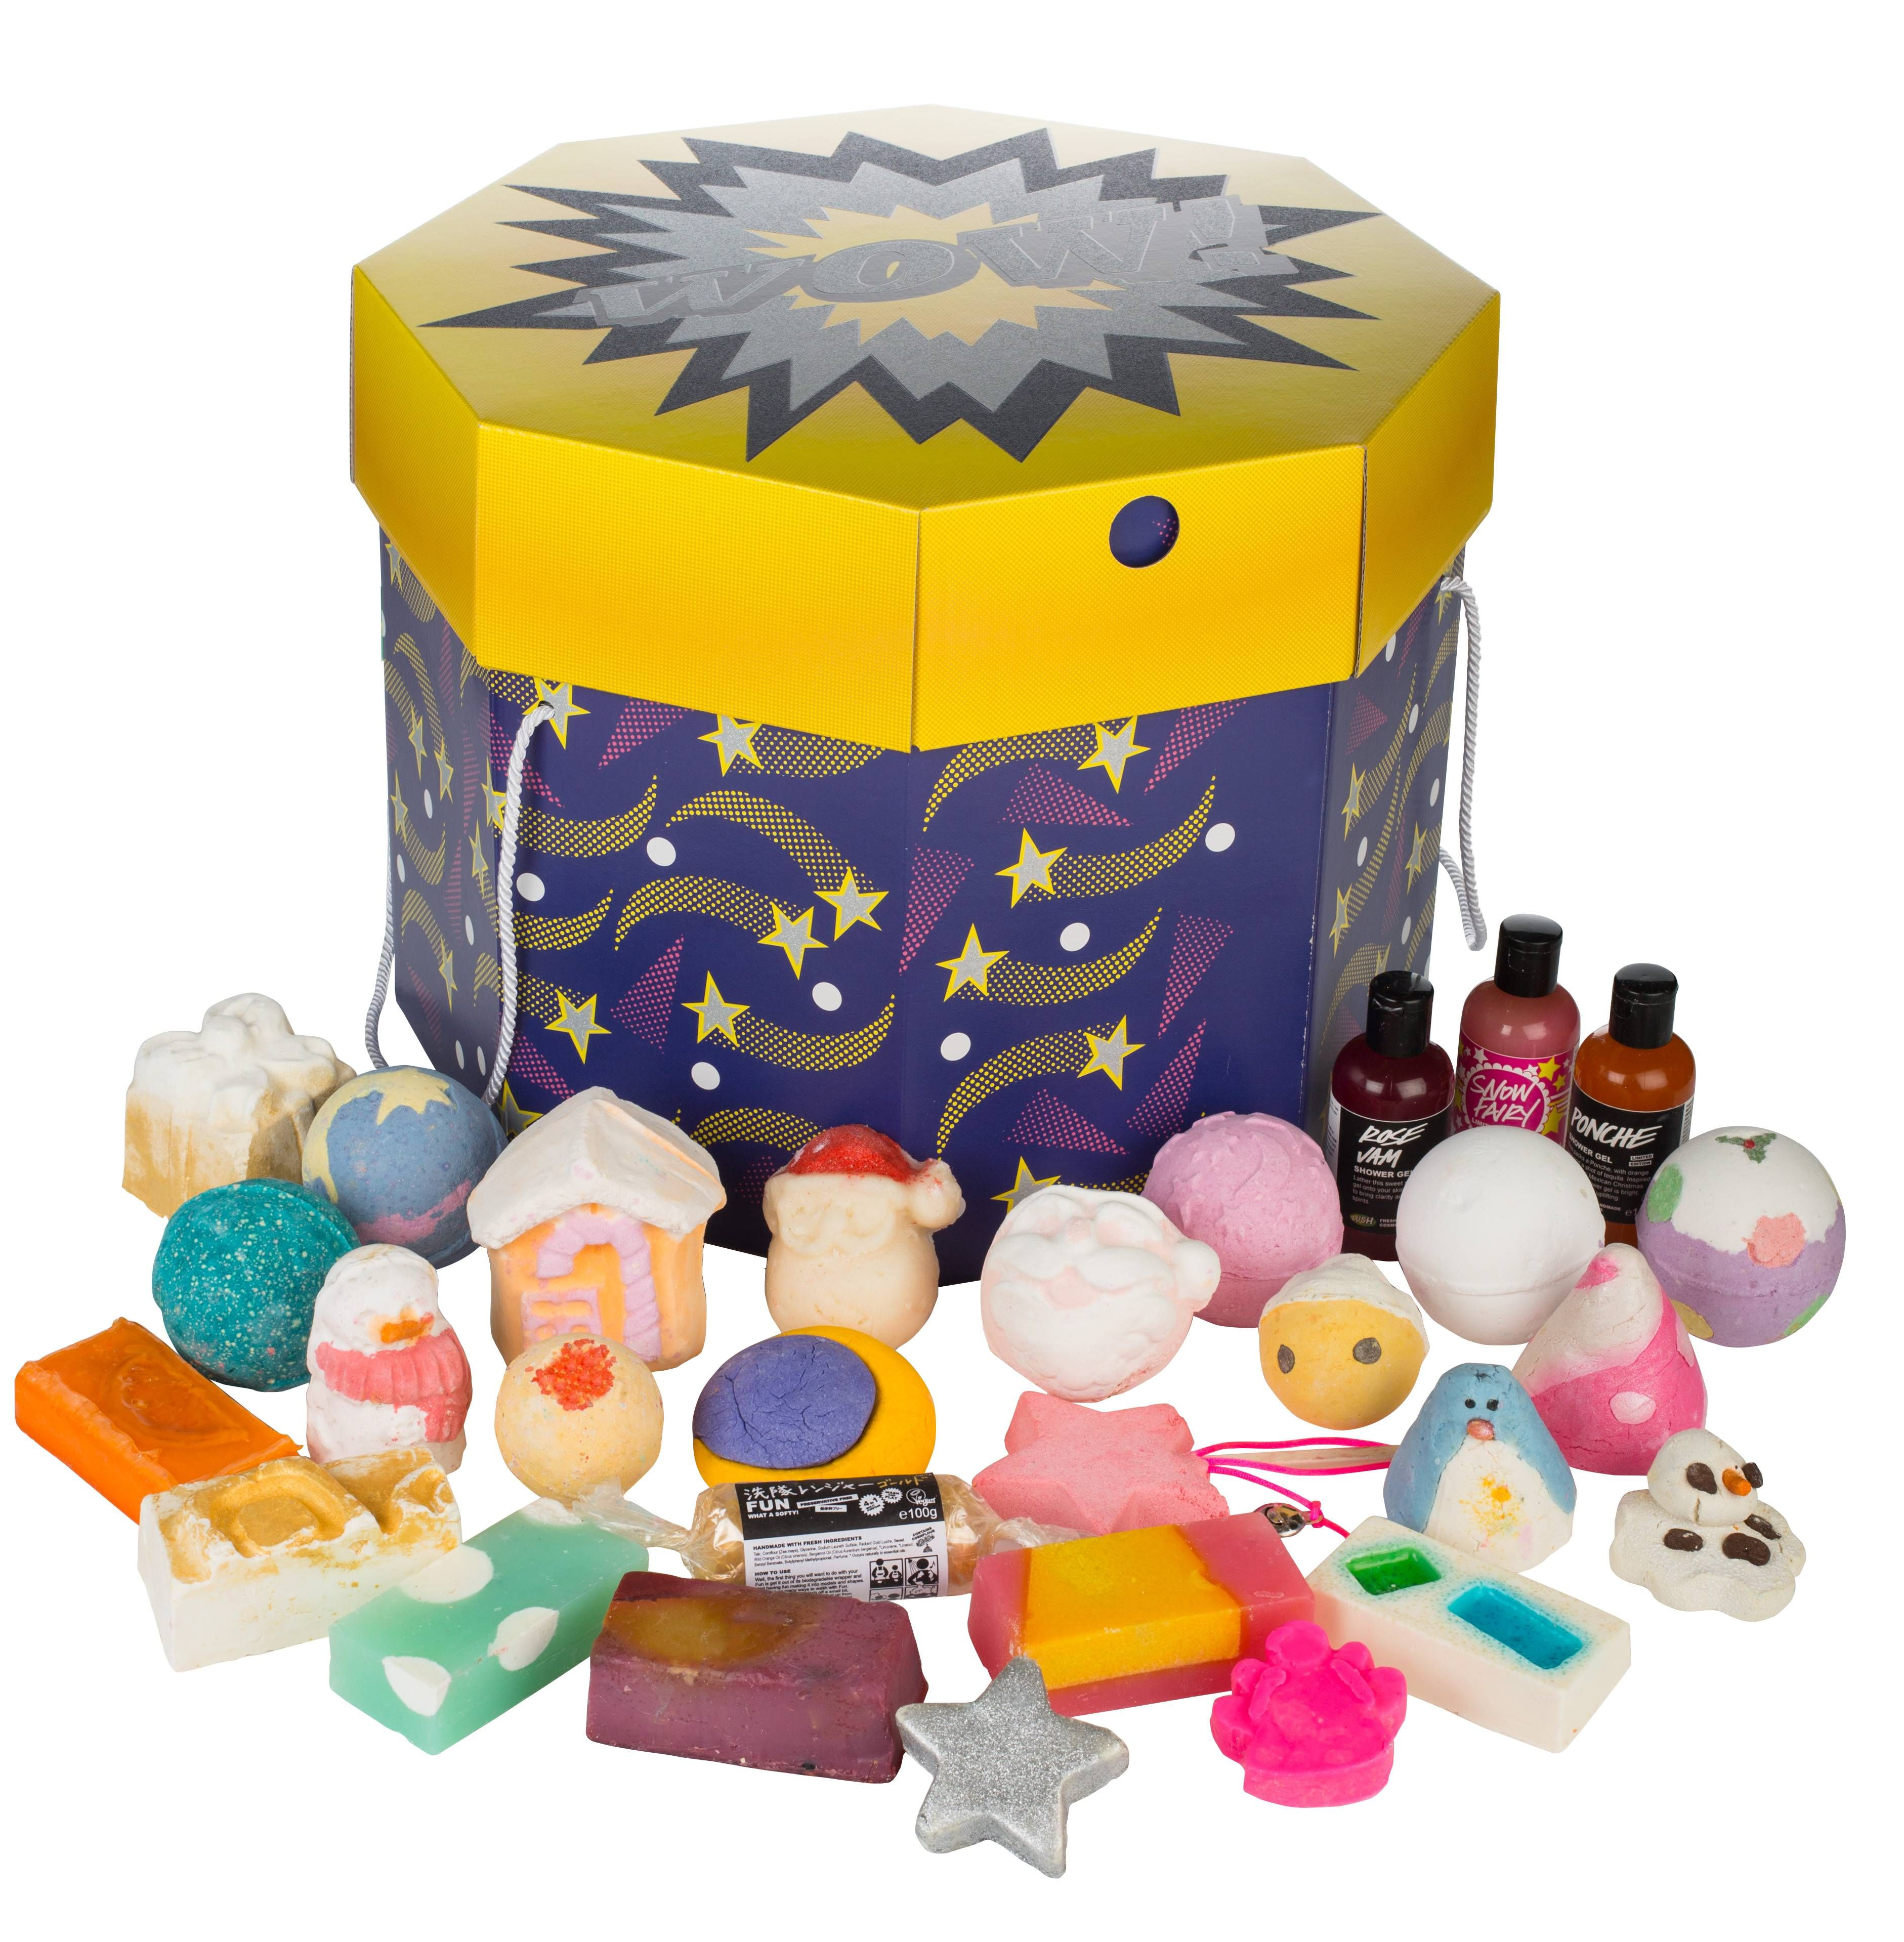 LUSH - Wow! Gift   lotion and soap , lush ,face wash etc..3 in 2018 ...